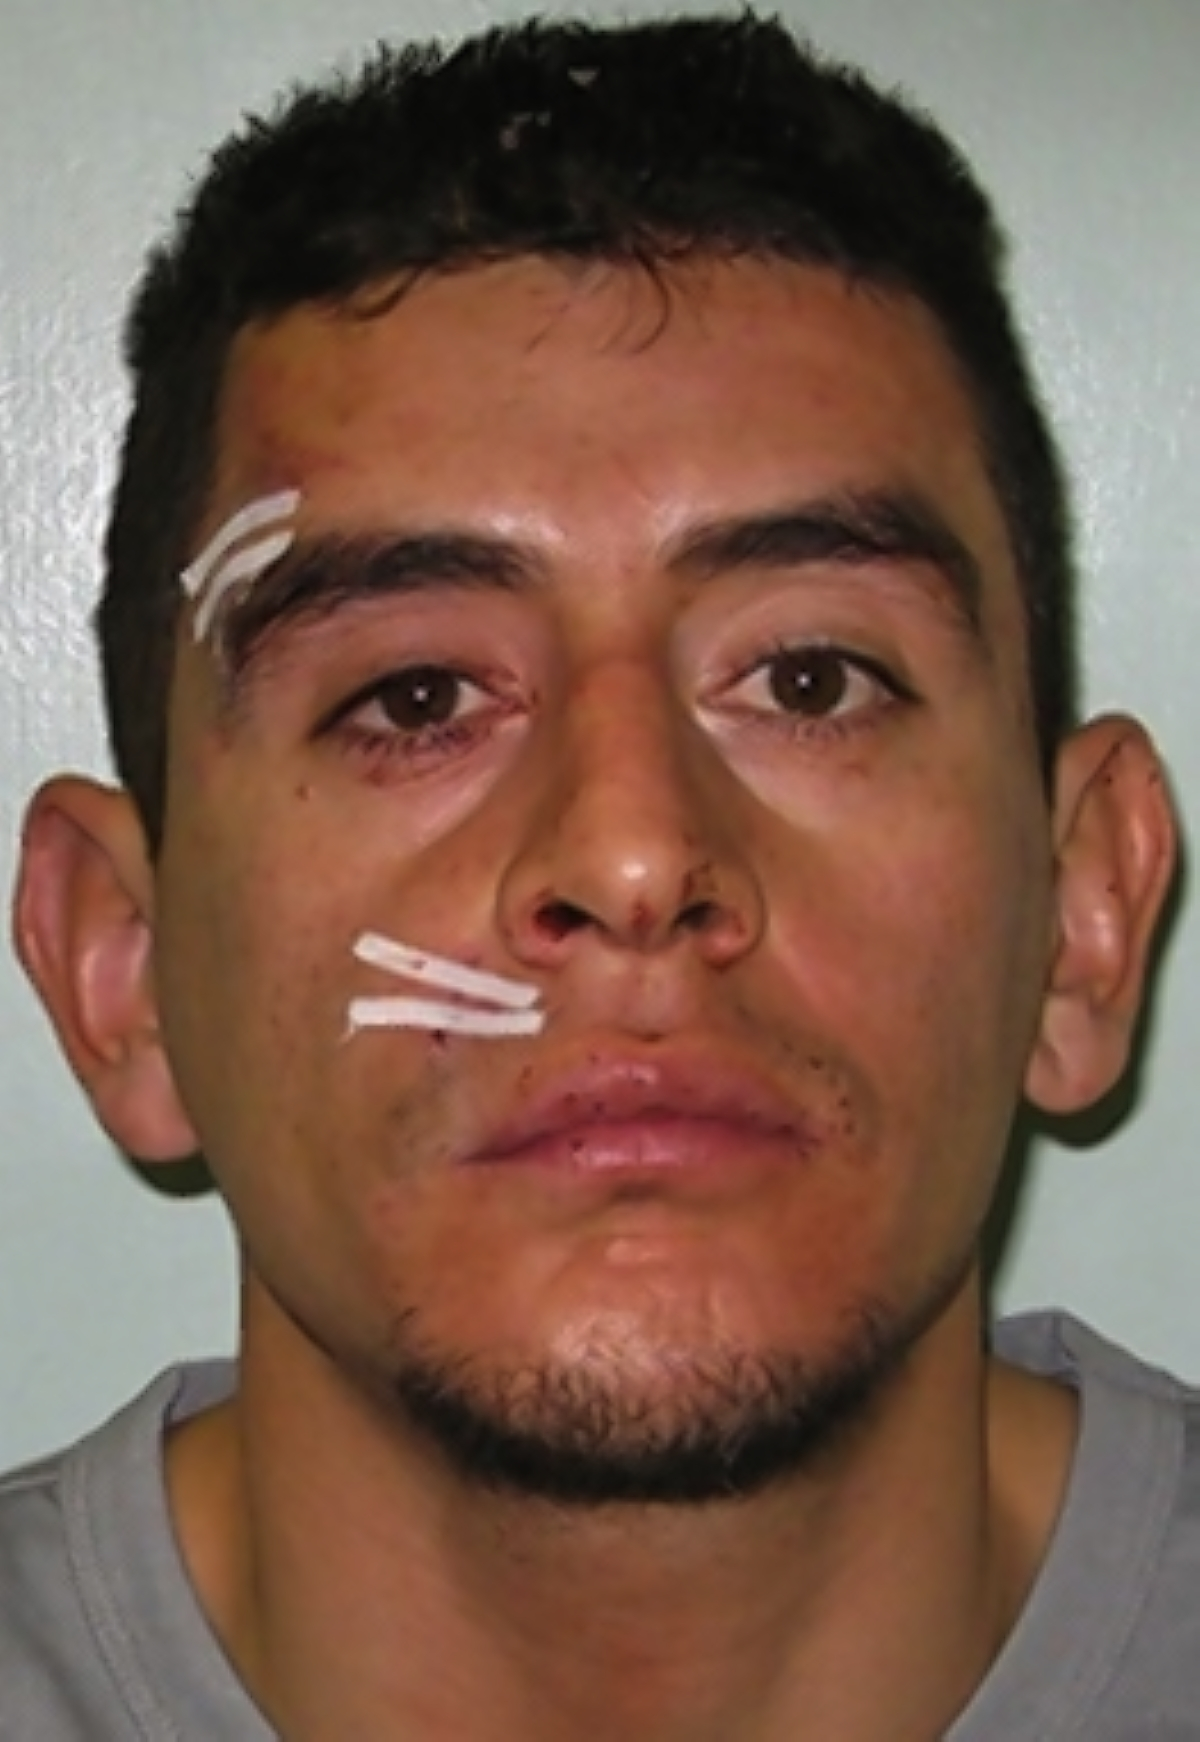 Carlos Rodriguez is still wanted in connection with burglaries in Harrow and Kingsbury